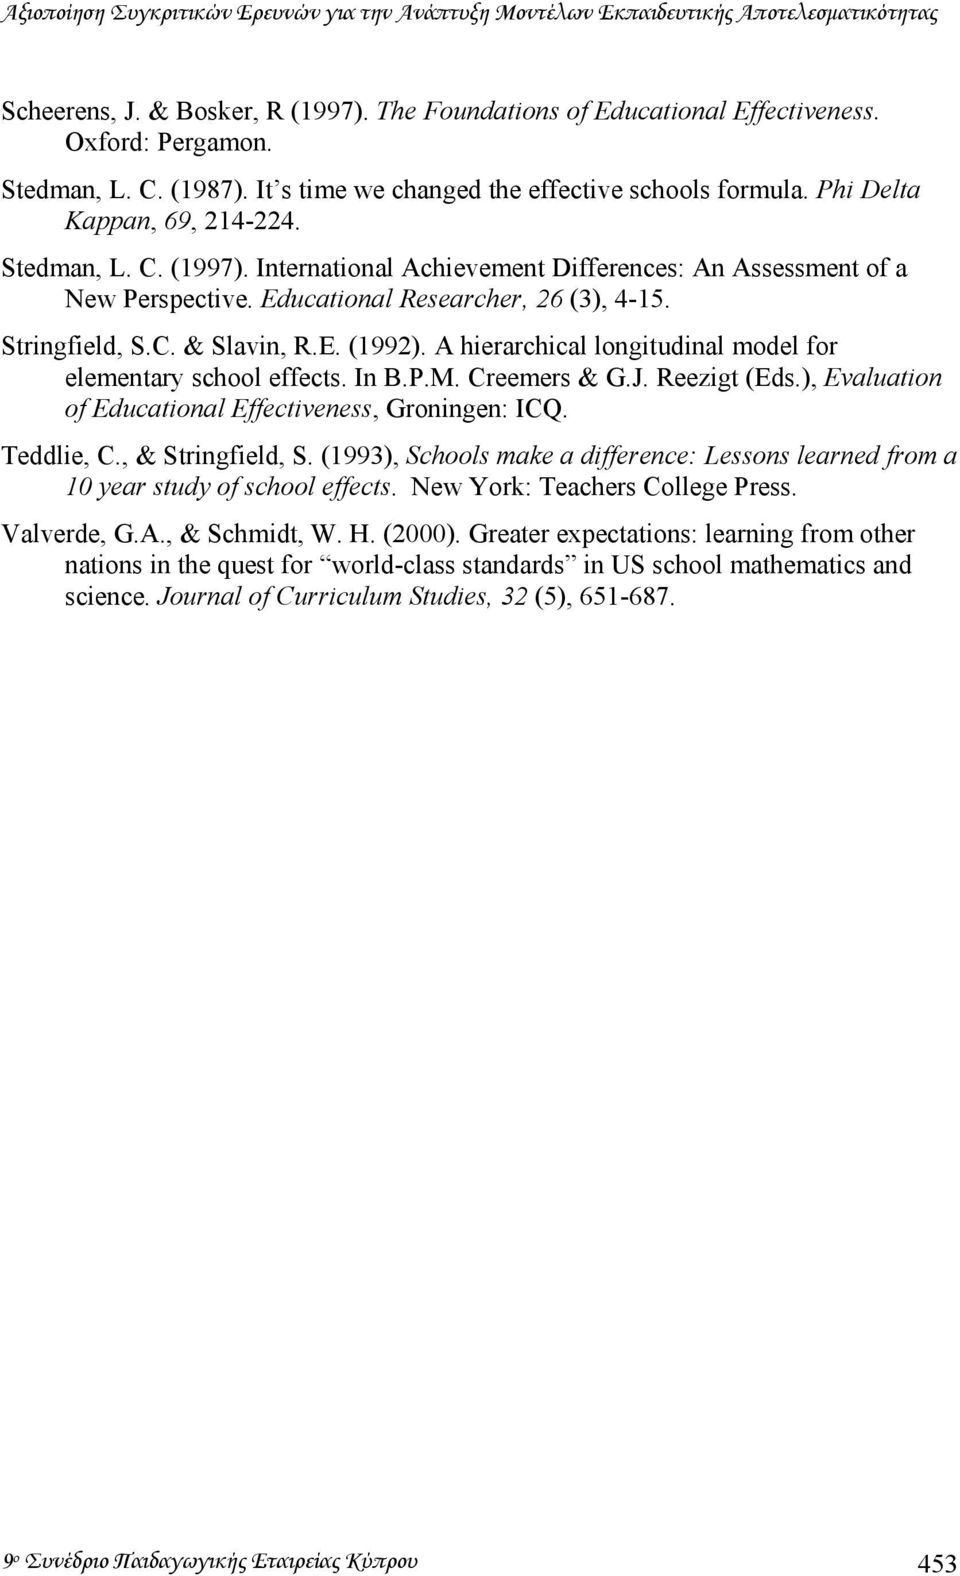 Educational Researcher, 26 (3), 4-15. Stringfield, S.C. & Slavin, R.E. (1992). A hierarchical longitudinal model for elementary school effects. In B.P.M. Creemers & G.J. Reezigt (Eds.